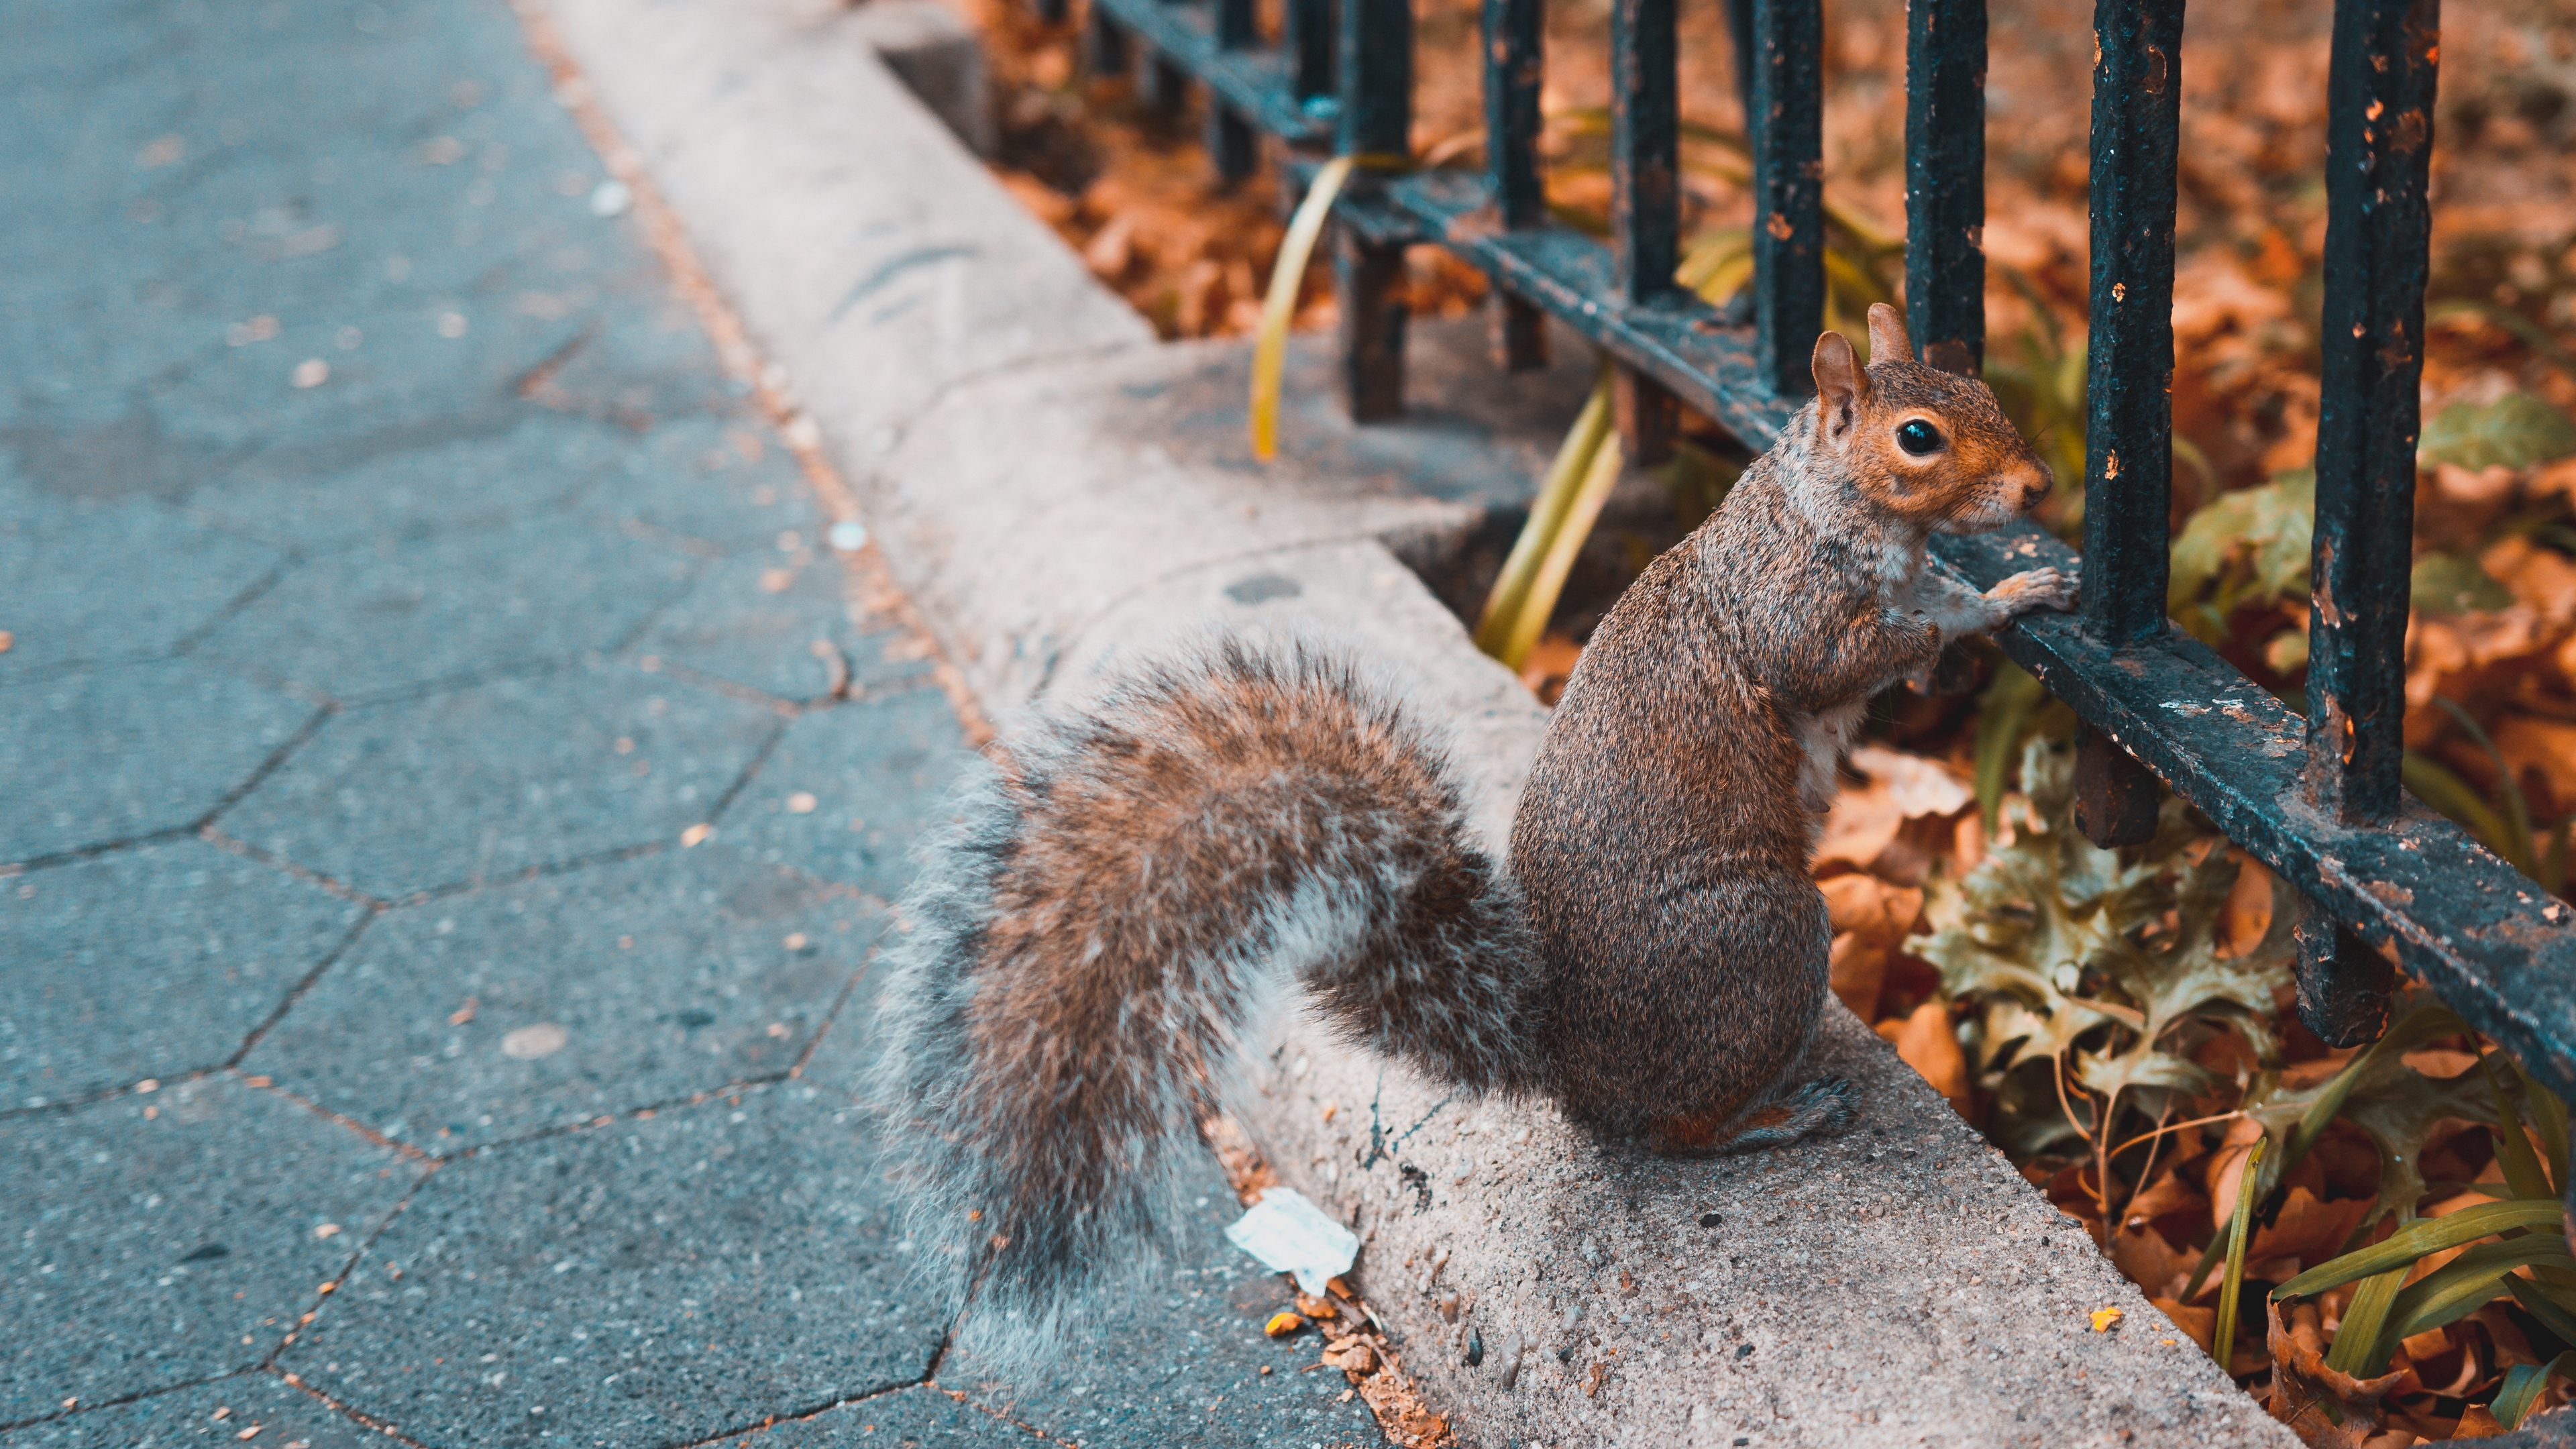 squirrel animal fence stand 4k 1542241753 - squirrel, animal, fence, stand 4k - Squirrel, fence, Animal